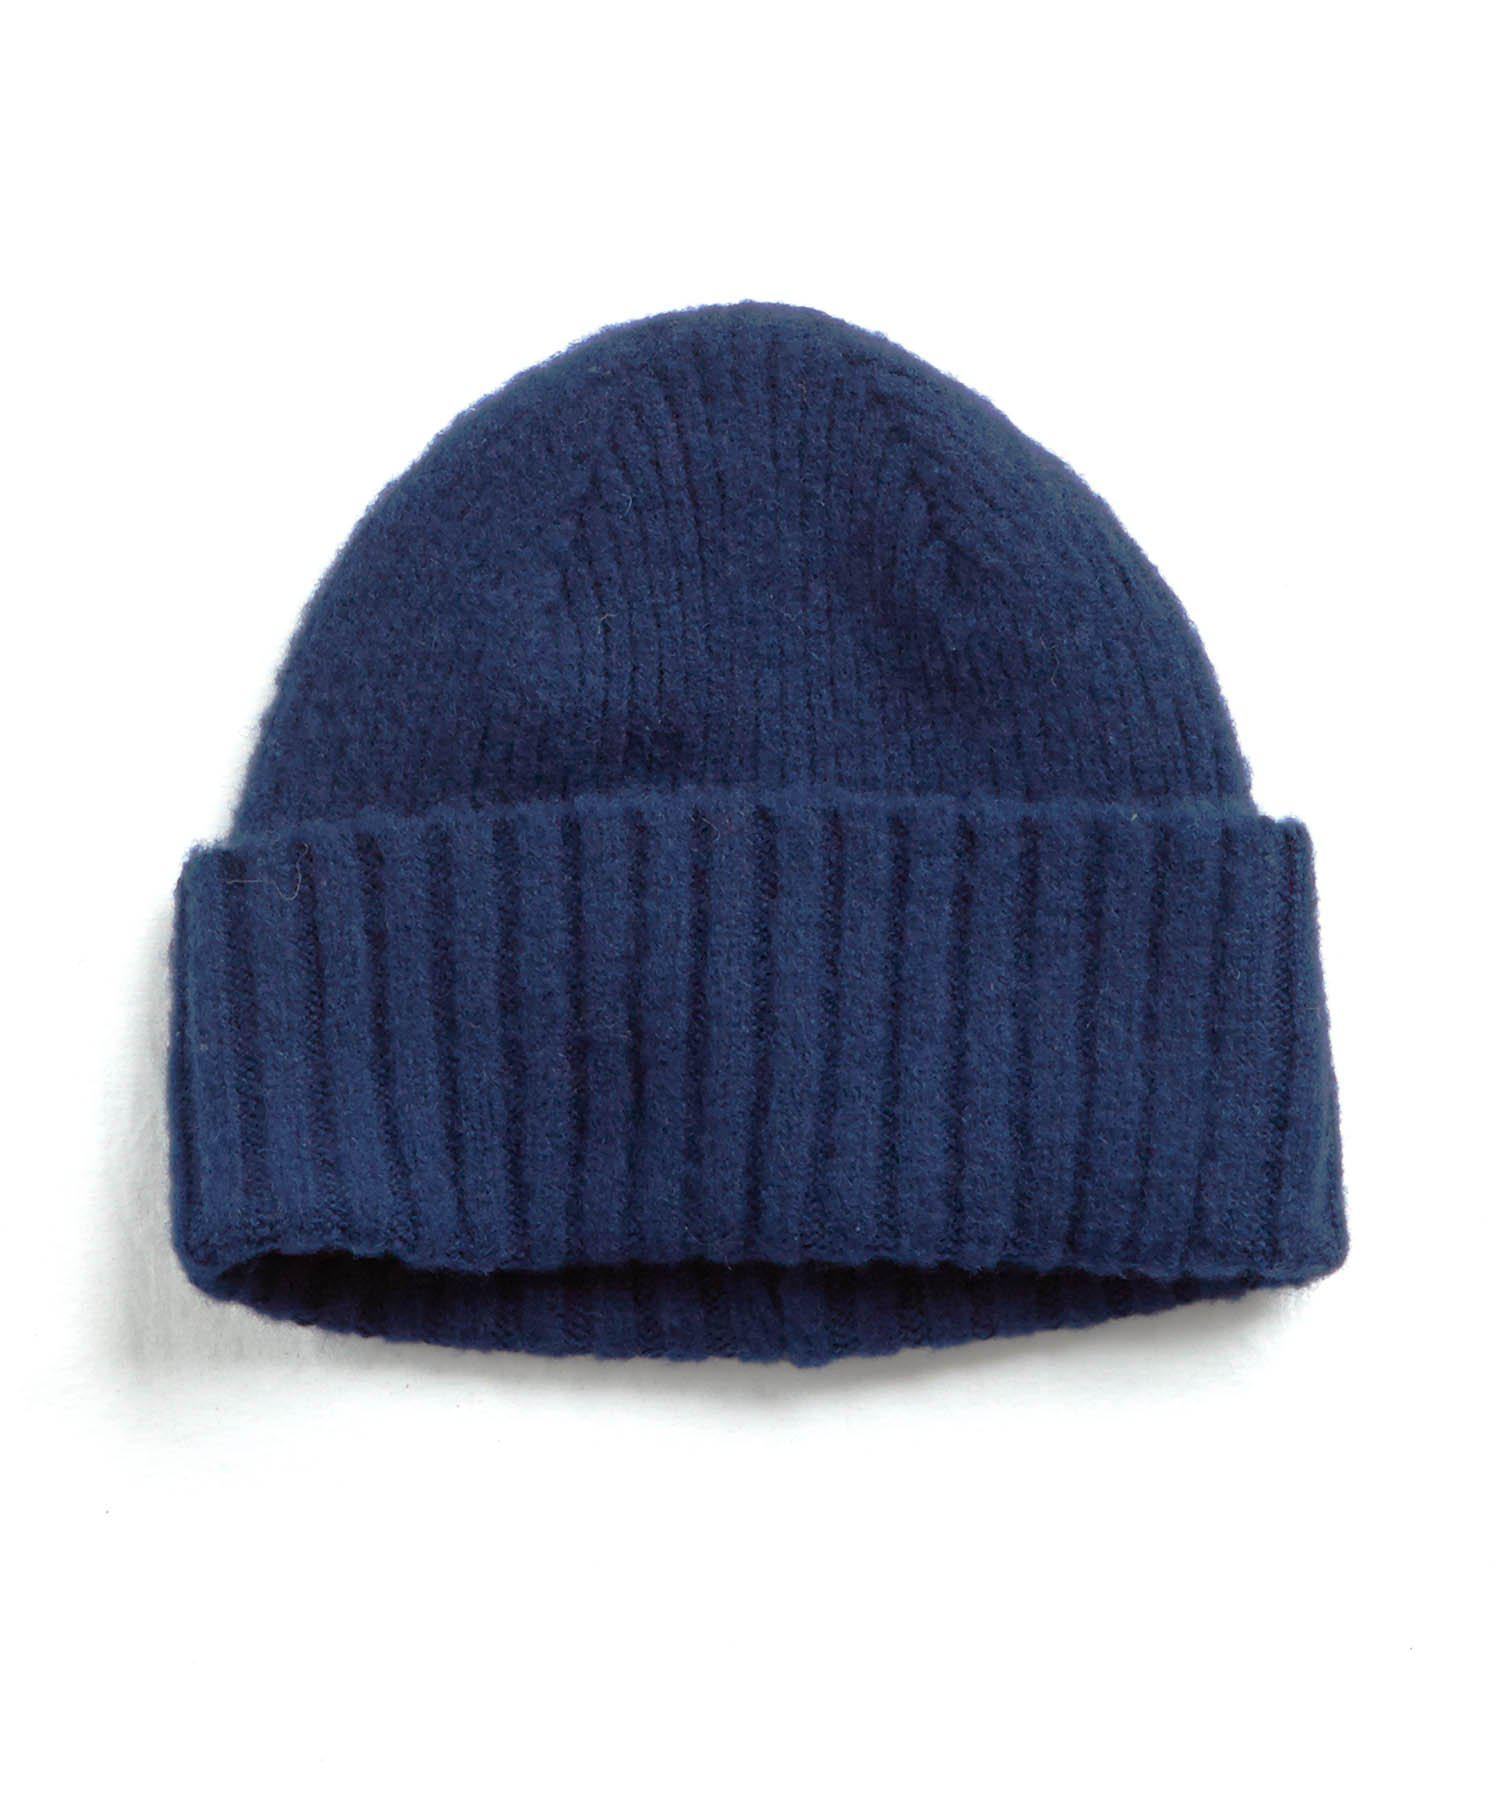 Drake s Brushed Lambswool Ribbed Hat in Blue for Men - Lyst 21674ce2ec4b